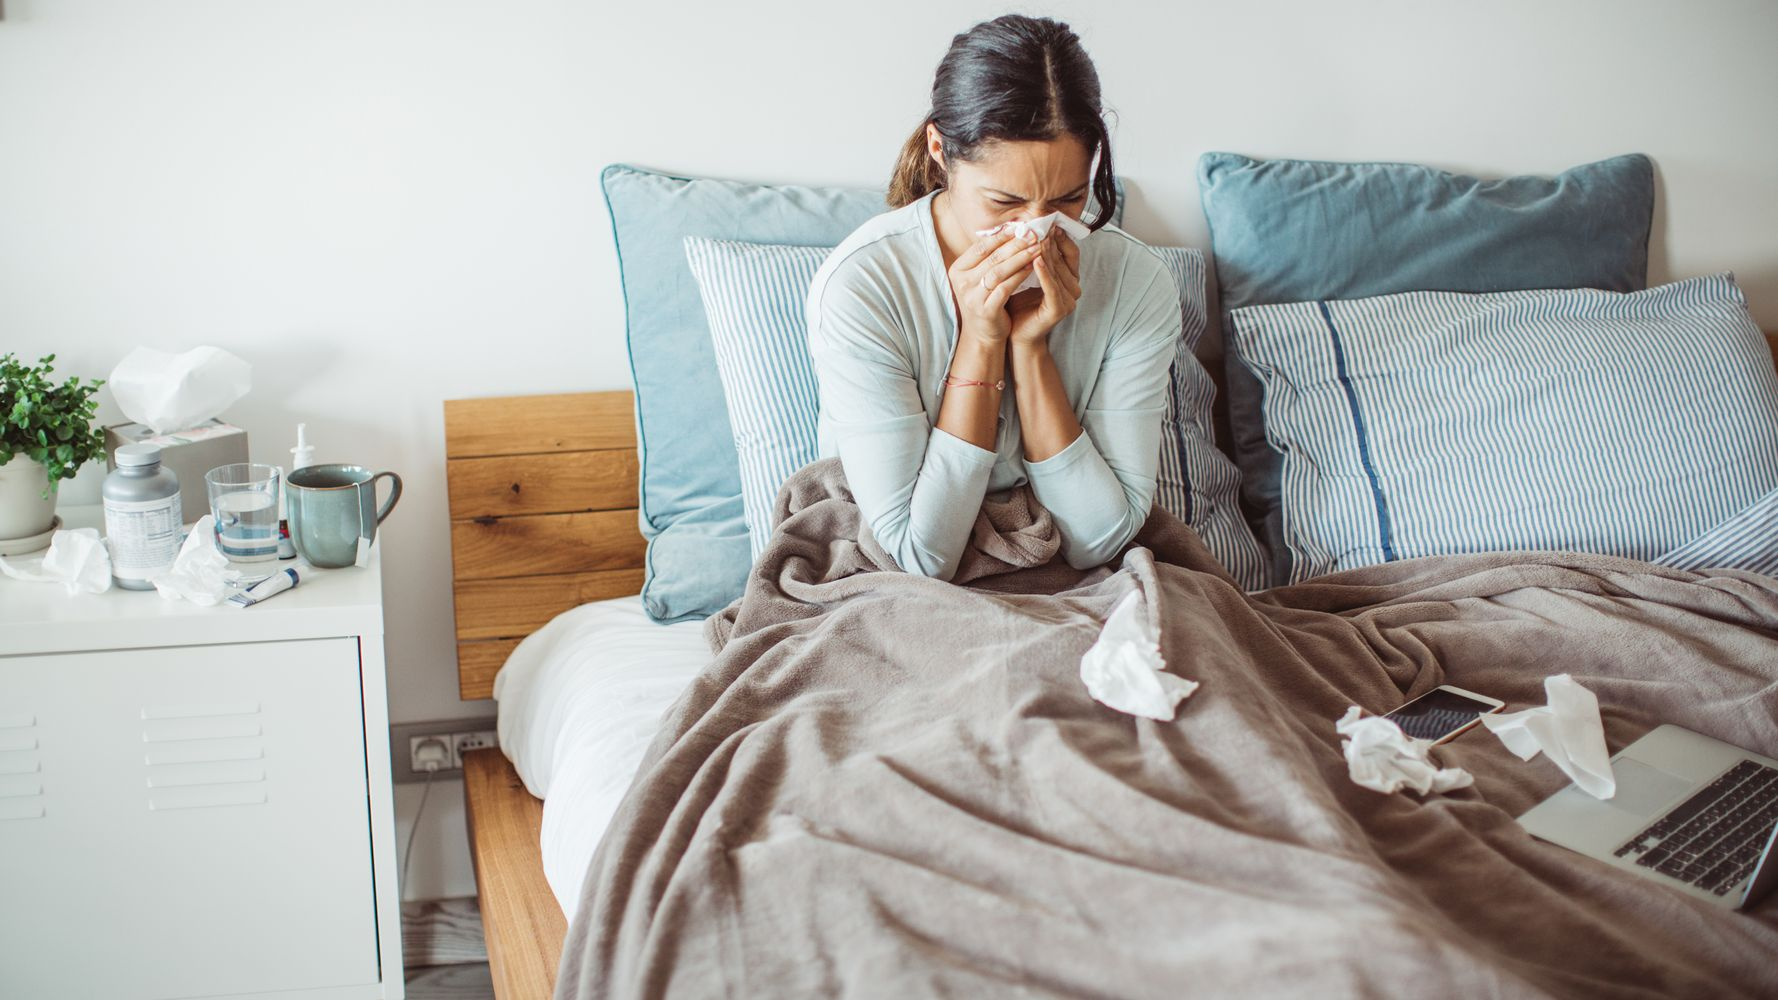 Revealed: Delta Variant Symptoms Might Be Different To What We're Used To